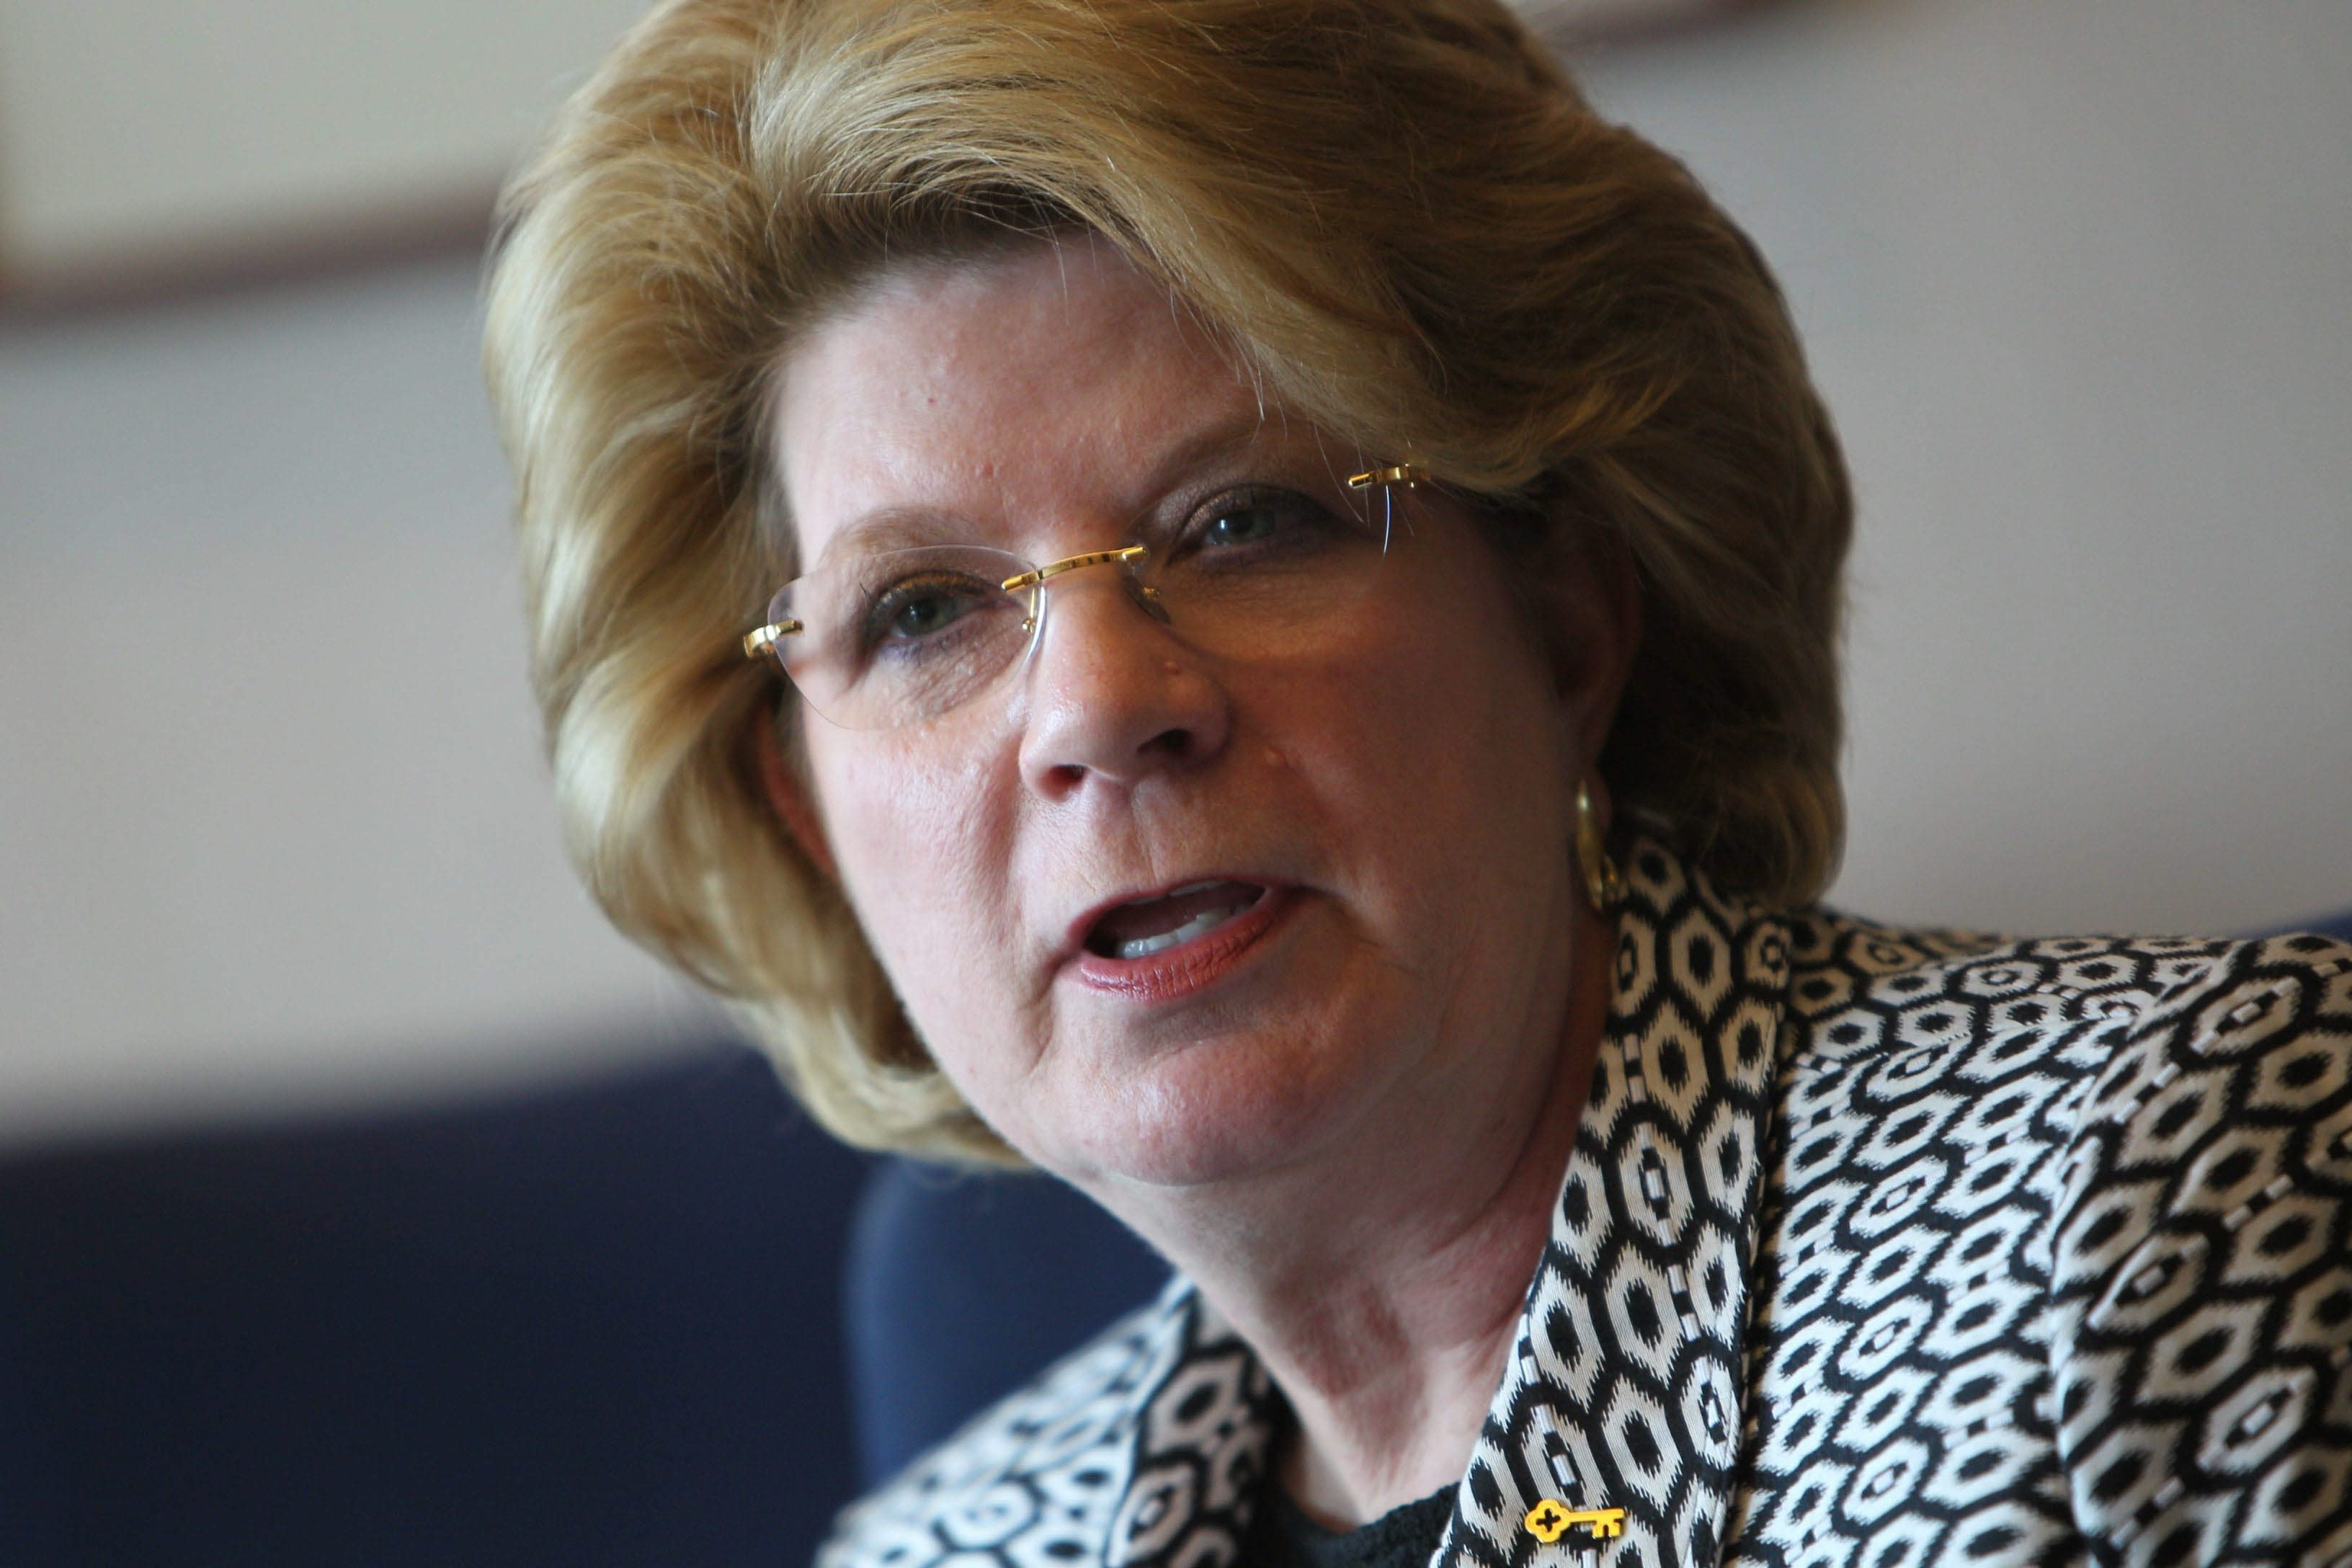 KeyCorp Chairman Beth Mooney is now the first woman to lead one of the nation's 20 largest banks.